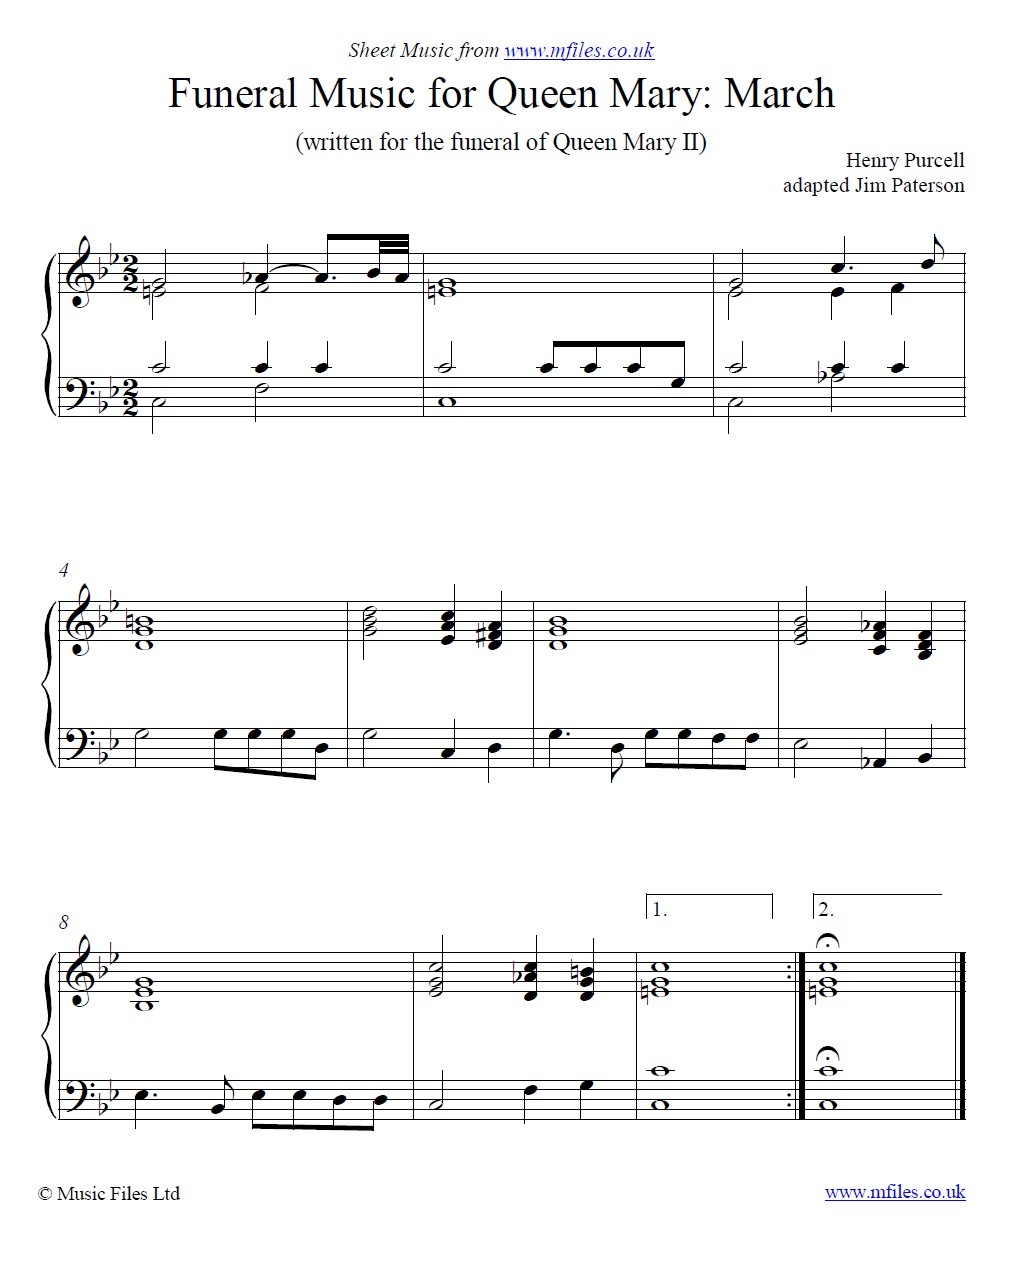 Purcell's March from the Funeral Music for Queen Mary for piano - sheet music 1st page